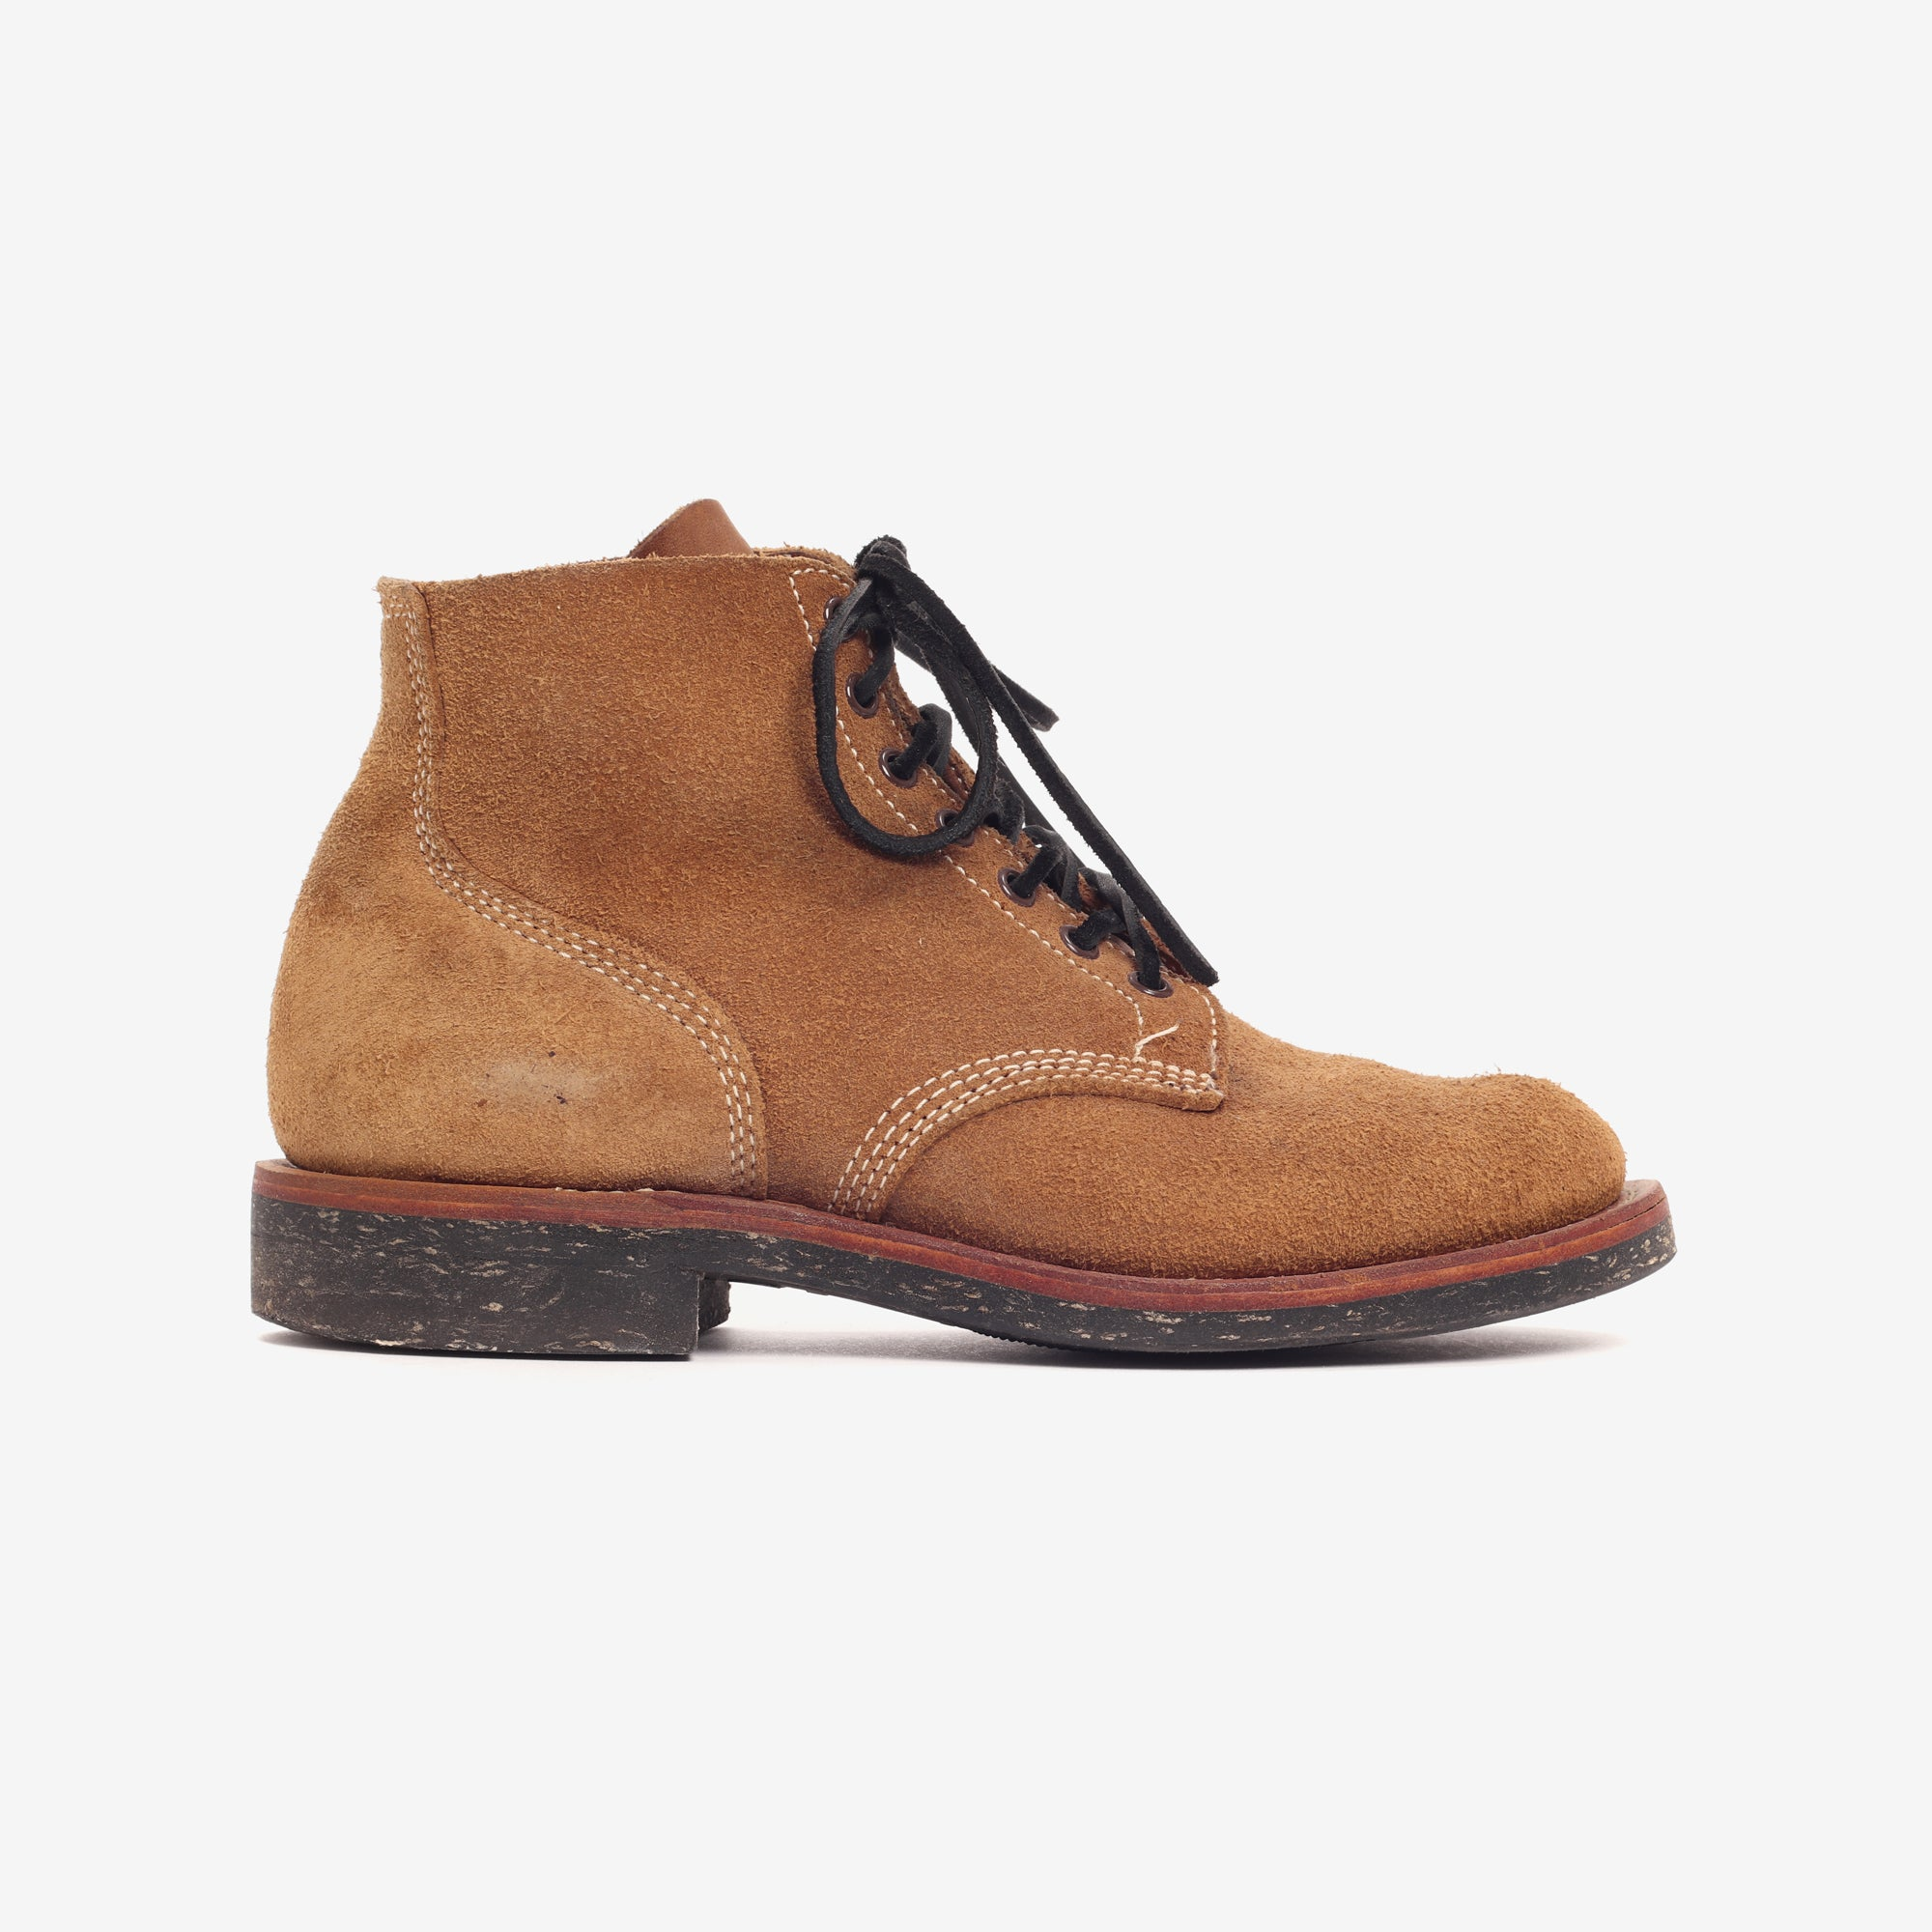 Roughout Service Boots